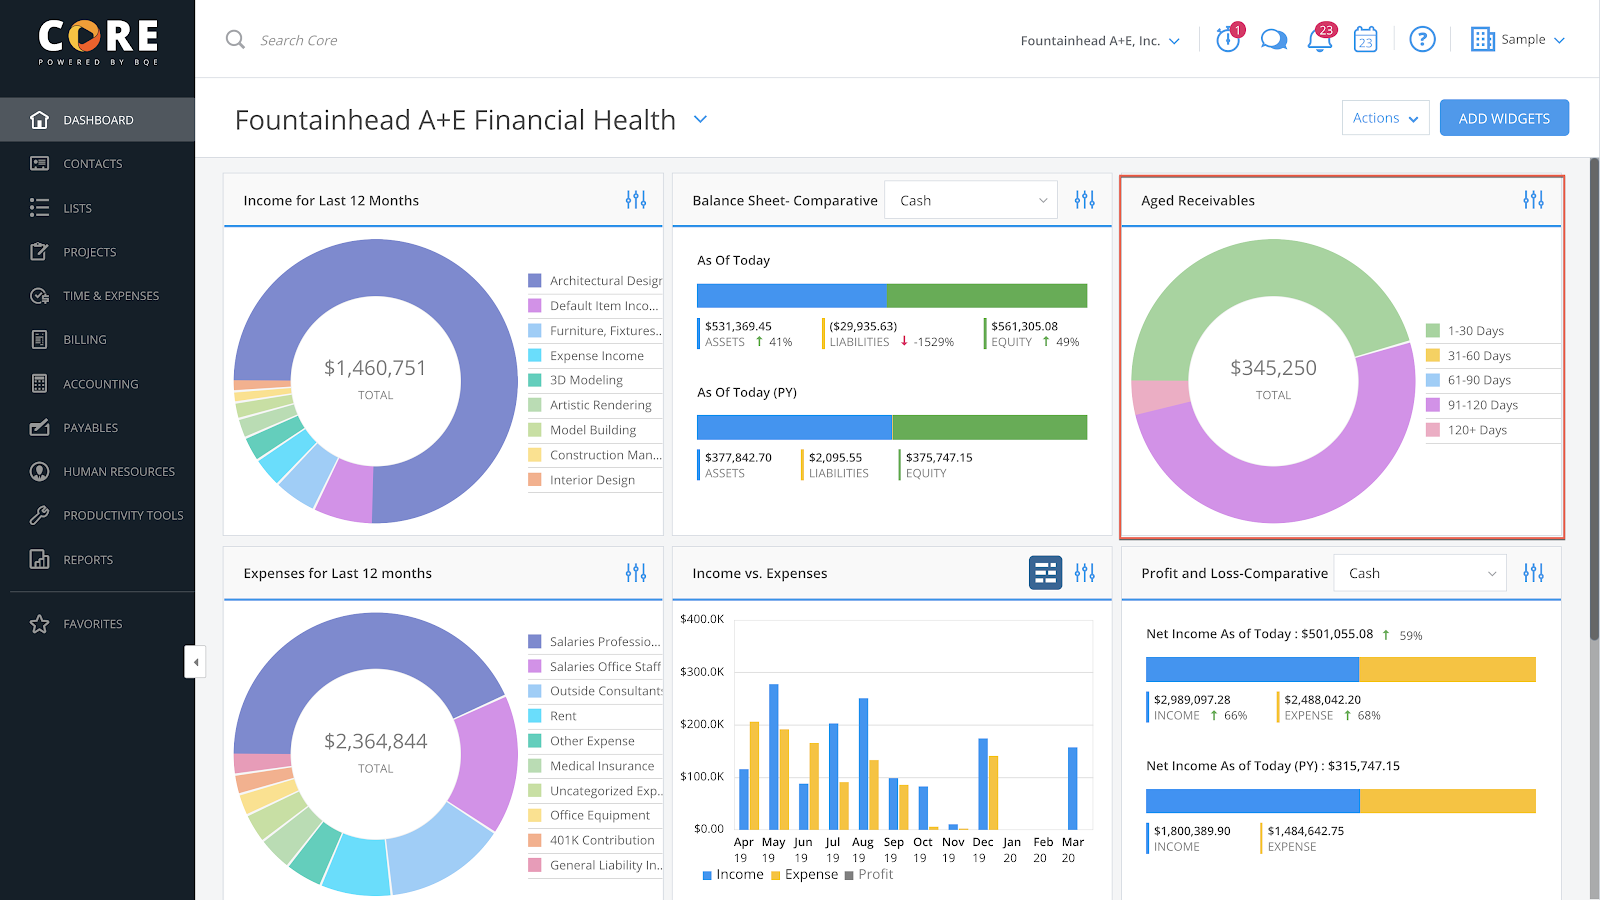 Your aged receivables can be easily monitored on your dashboard in BQE Core